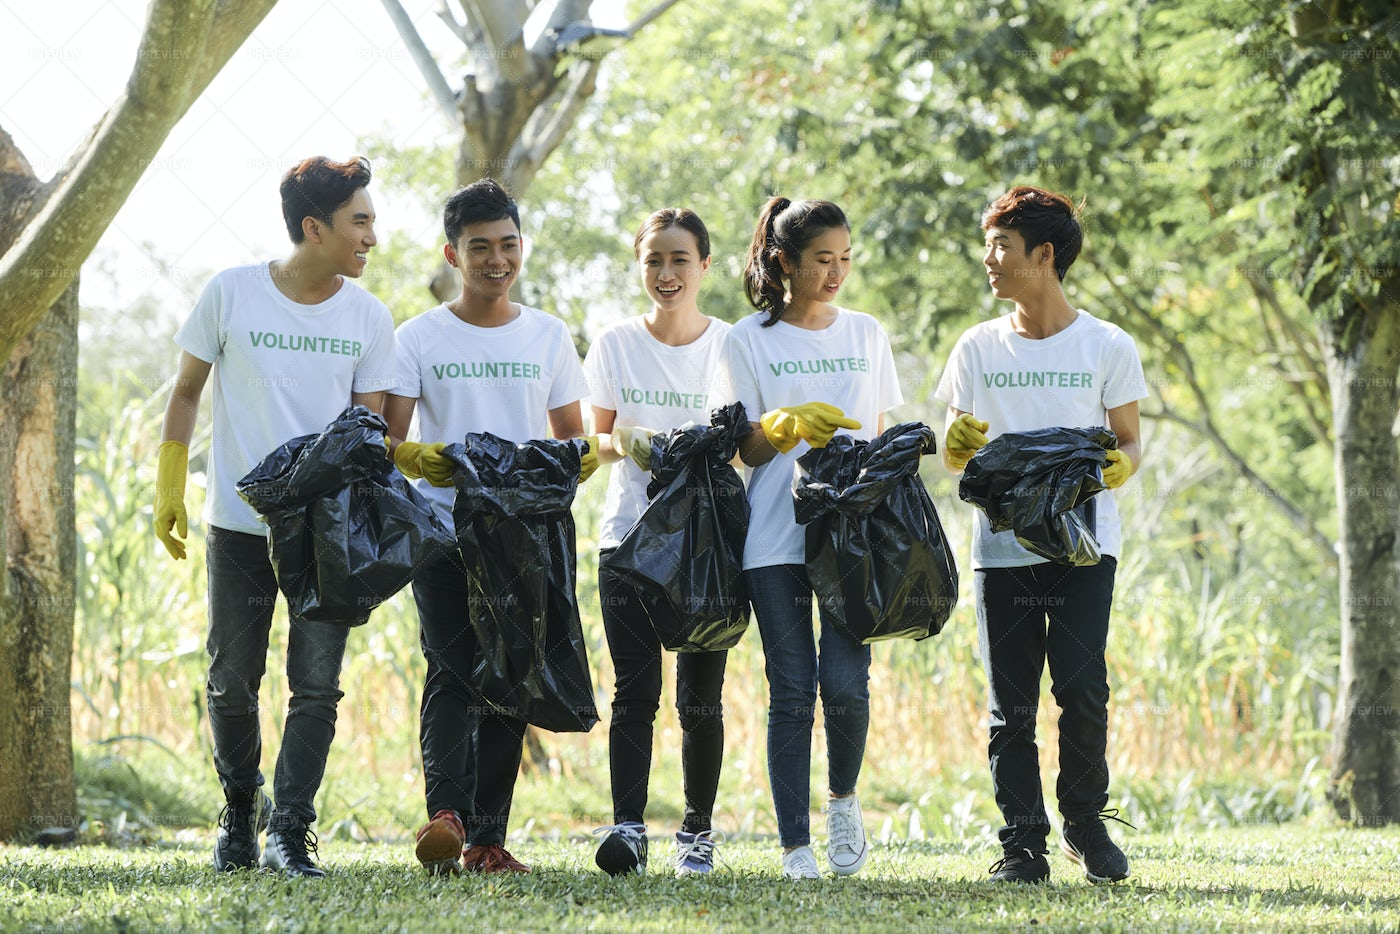 Volunteers Cleaning The Park: Stock Photos